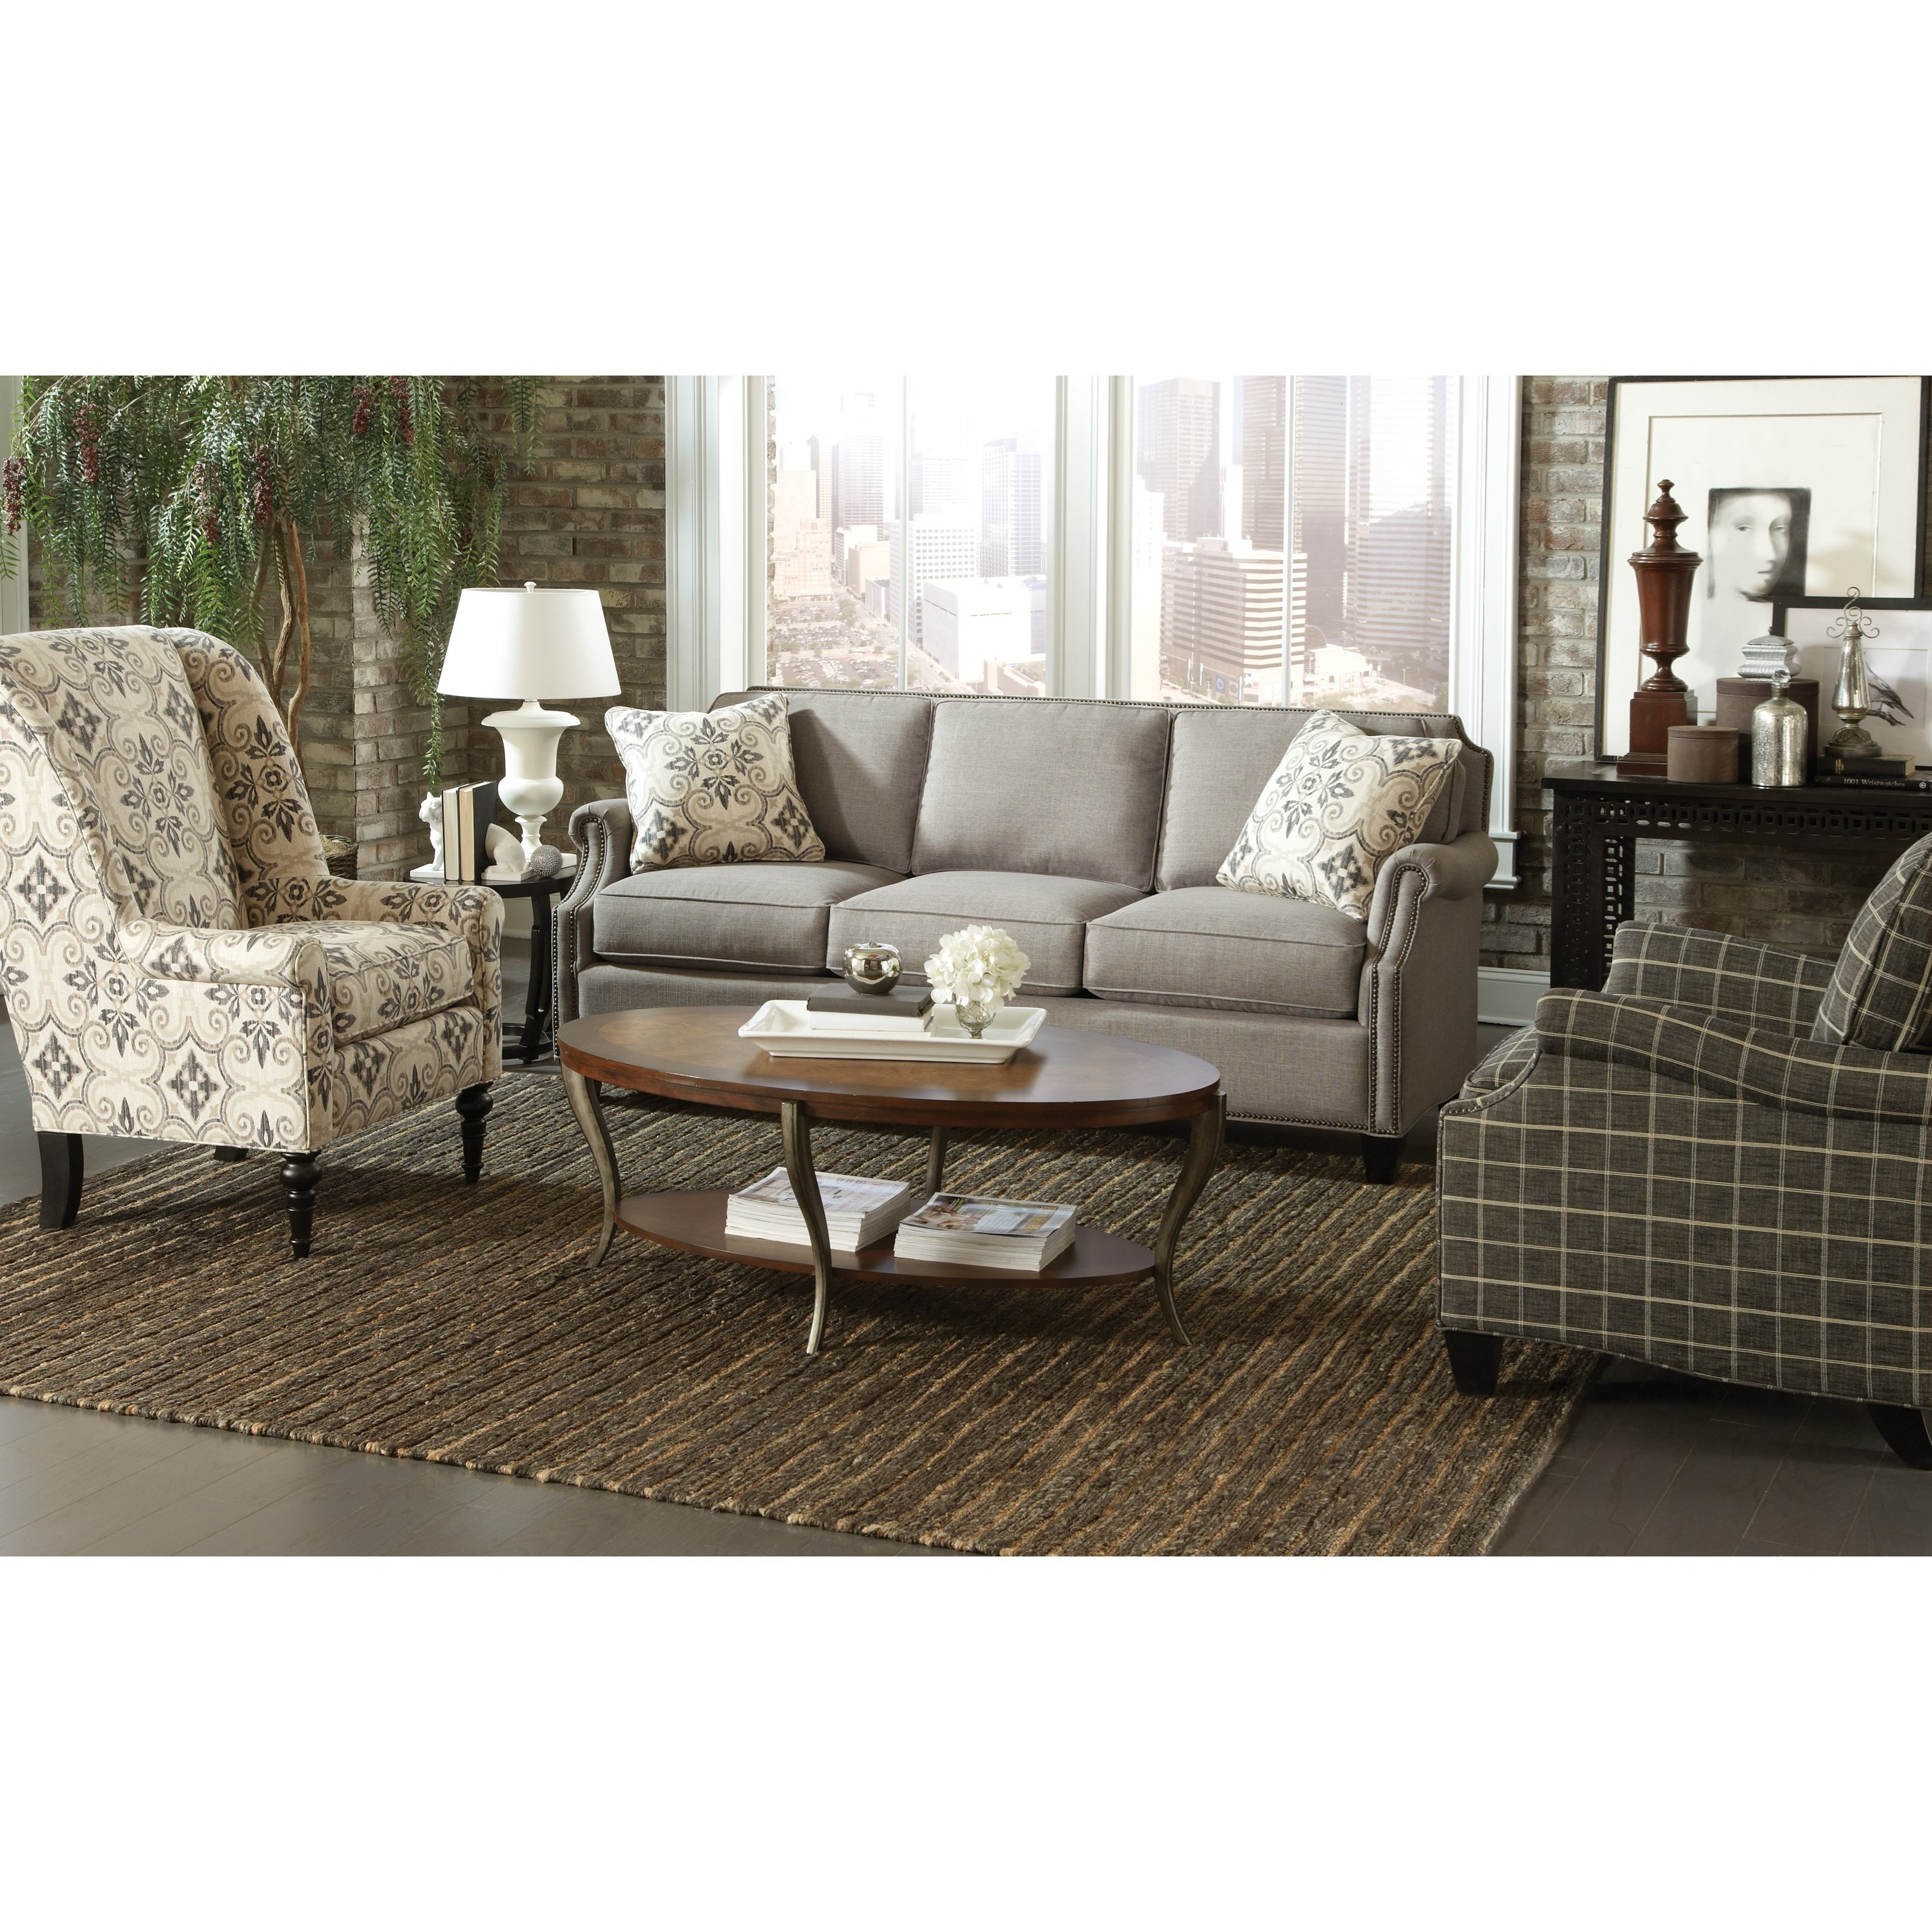 938350BD Living Room Group by Craftmaster at Home Collections Furniture